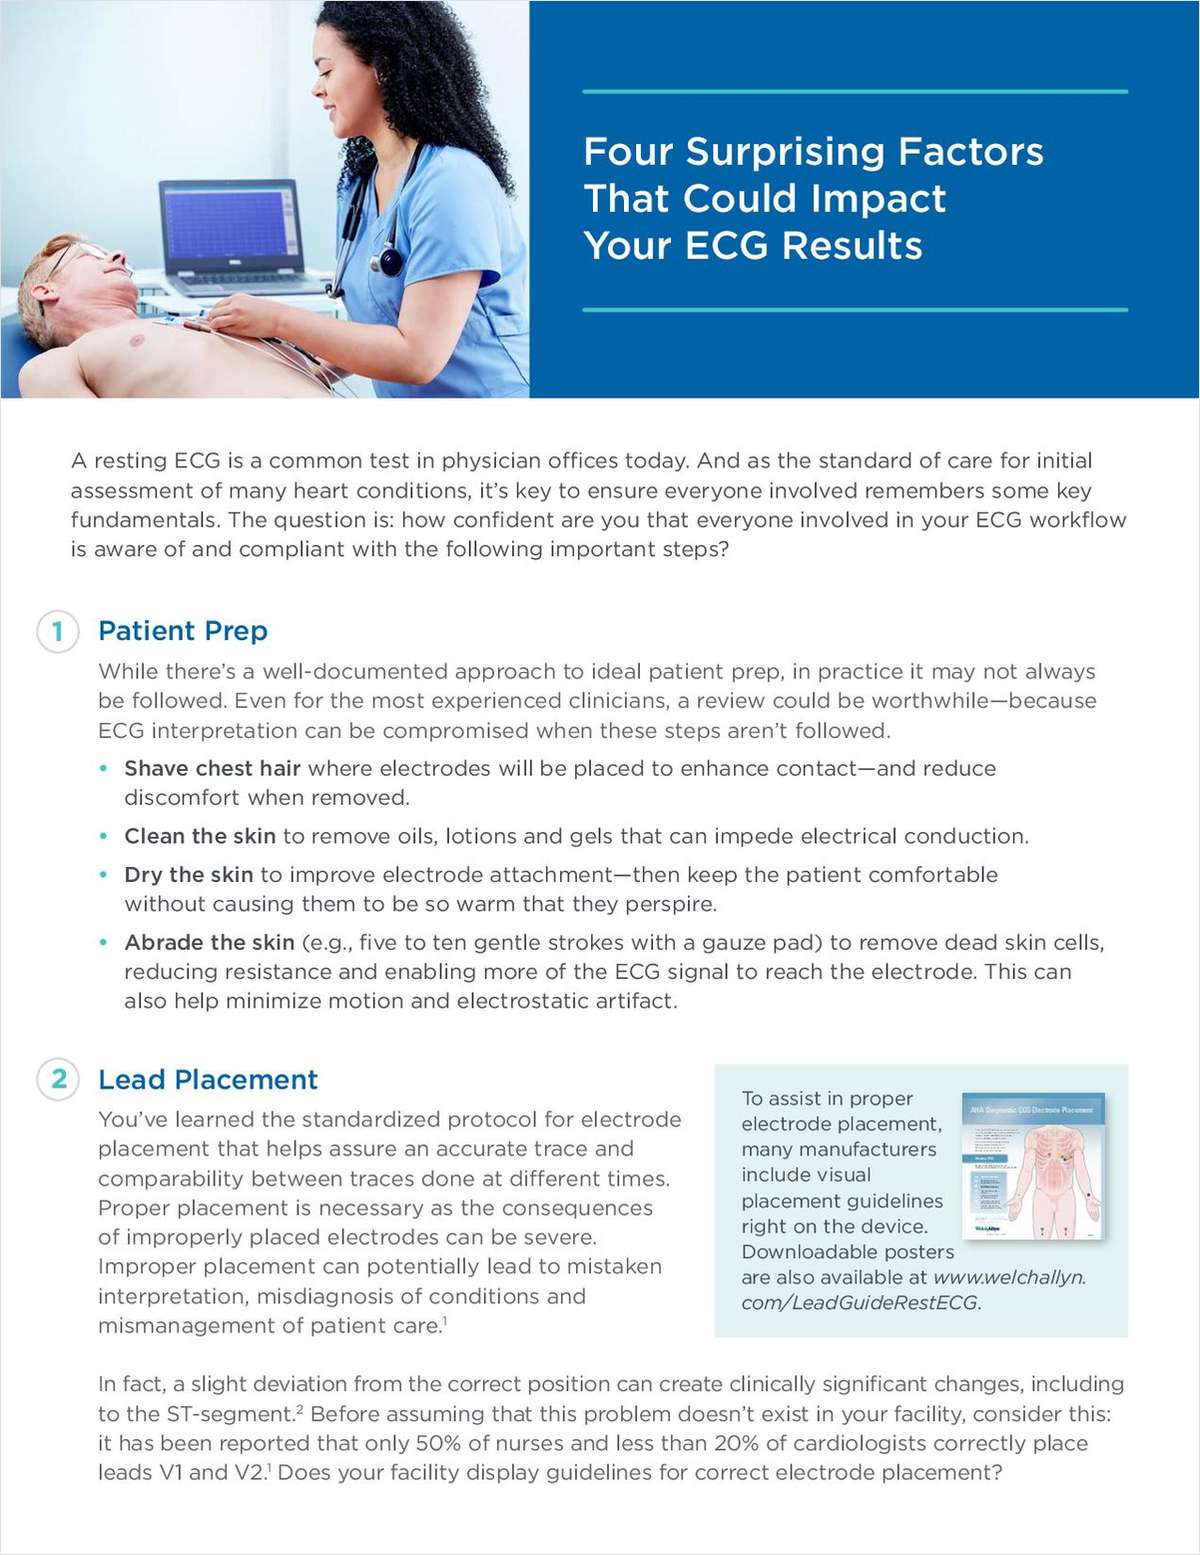 Four Surprising Factors that Could Impact Your ECG Results